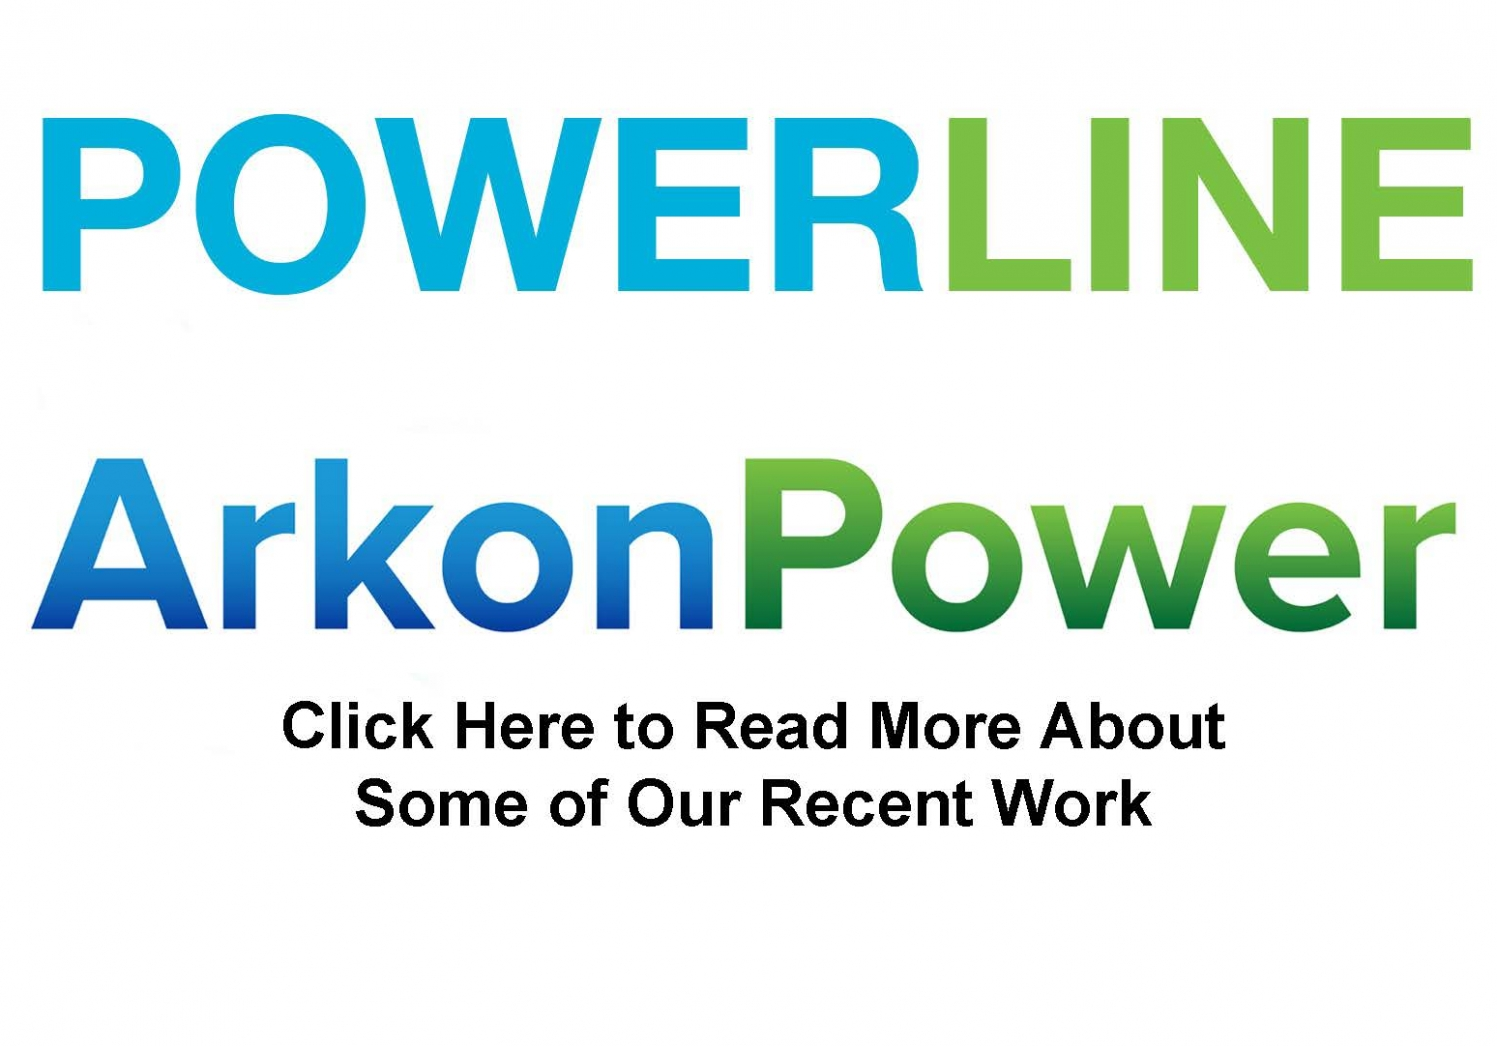 Powerline Newsletter